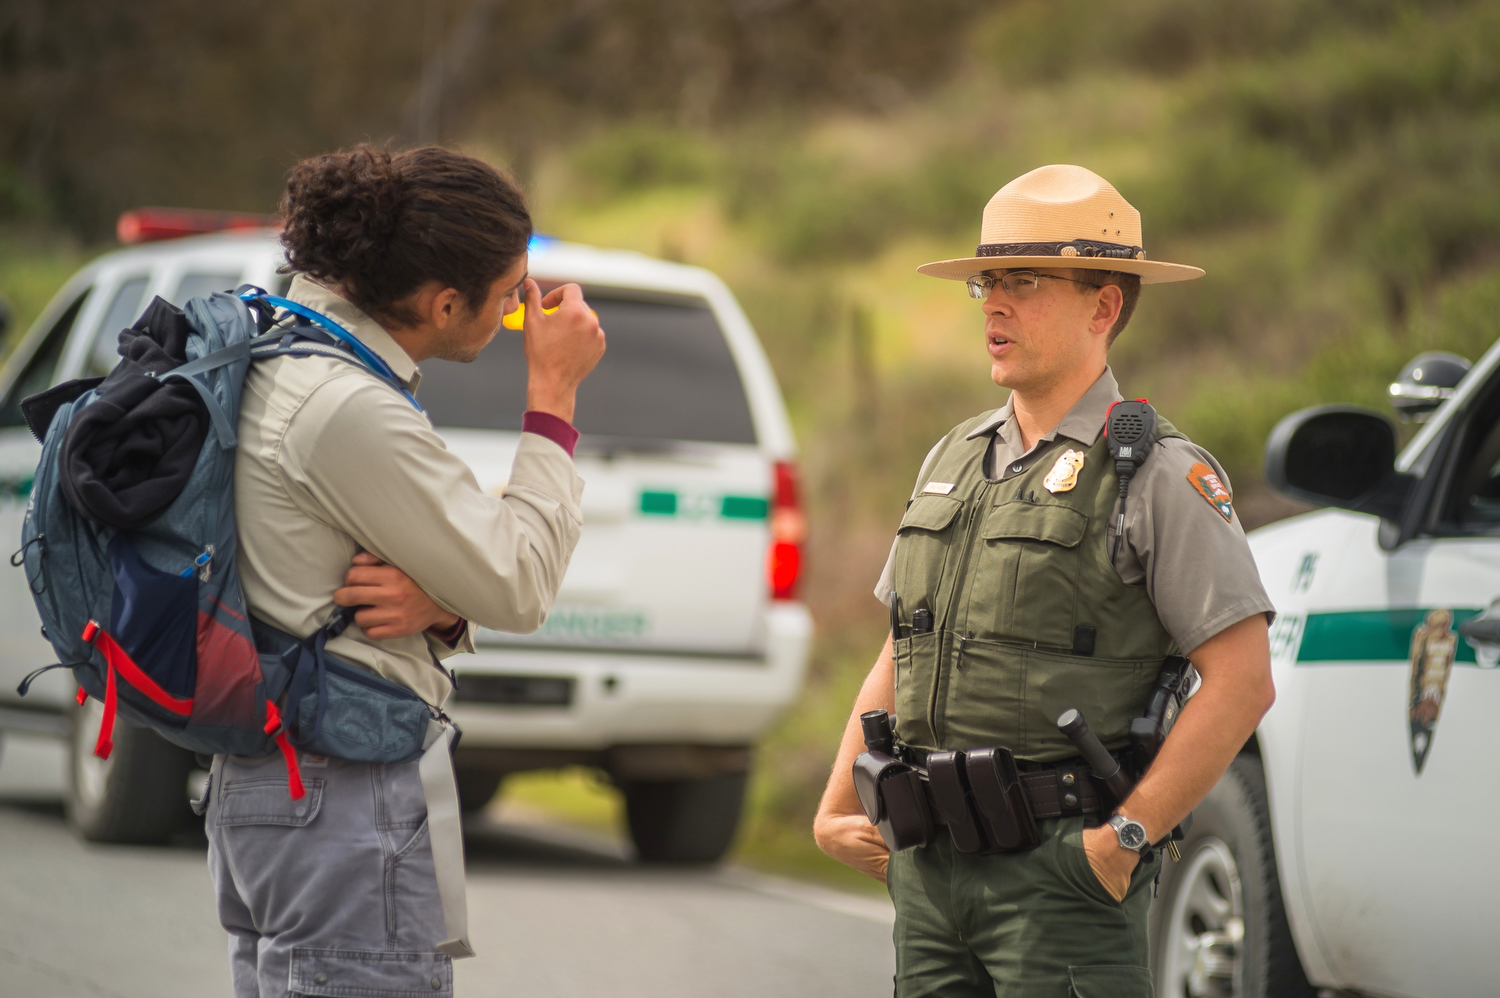 A park ranger gives directions.